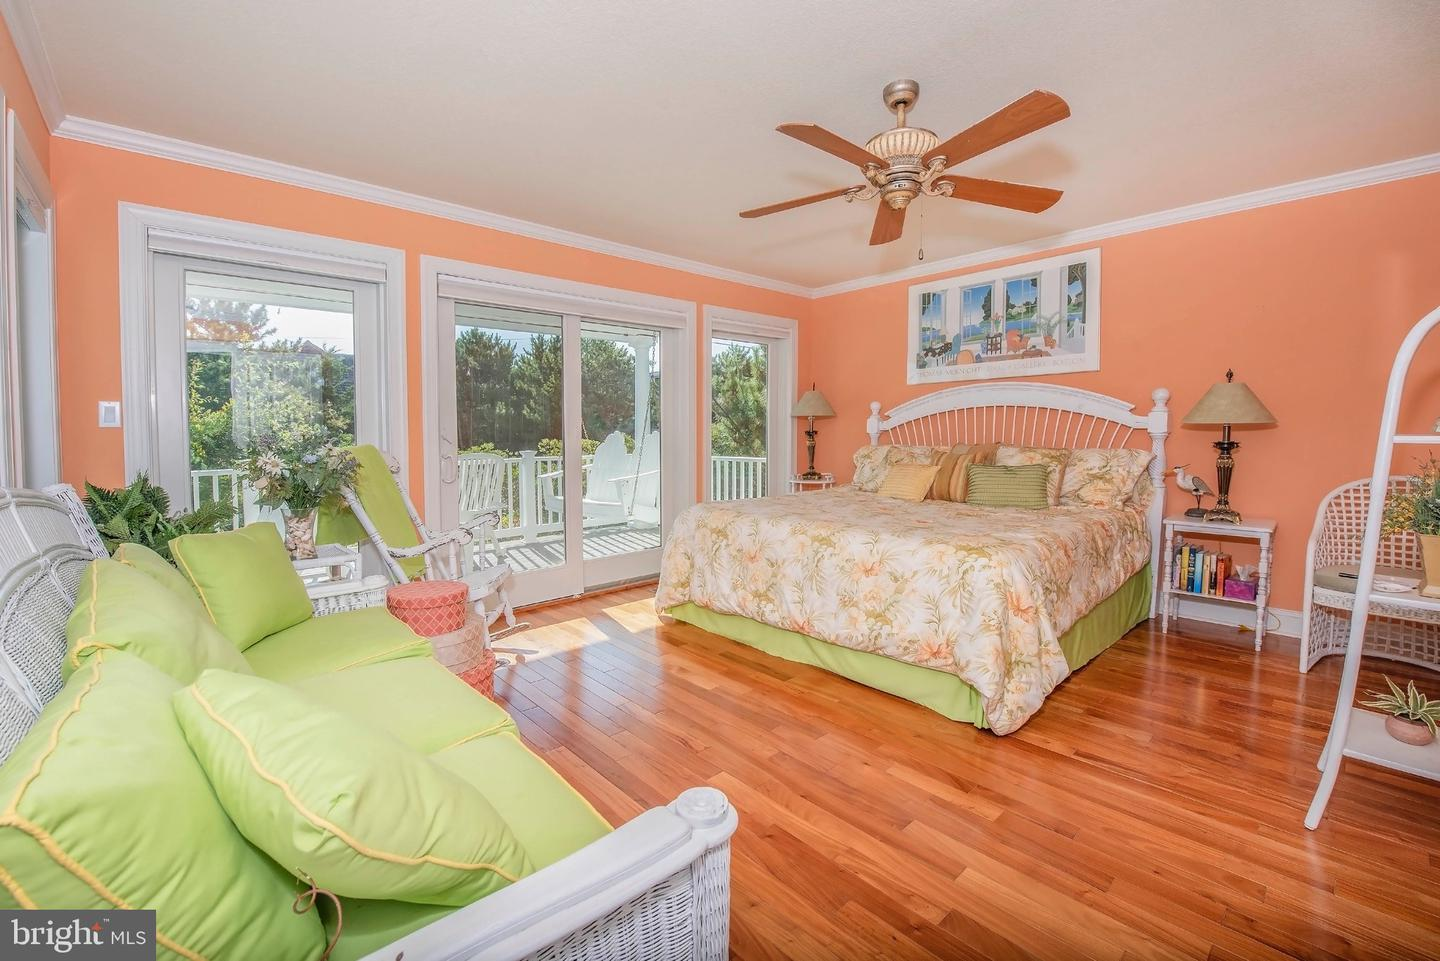 DESU147280-302007870104-2019-08-31-13-42-10 810 Bunting Ave | Fenwick Island, De Real Estate For Sale | MLS# Desu147280  - Suzanne Macnab